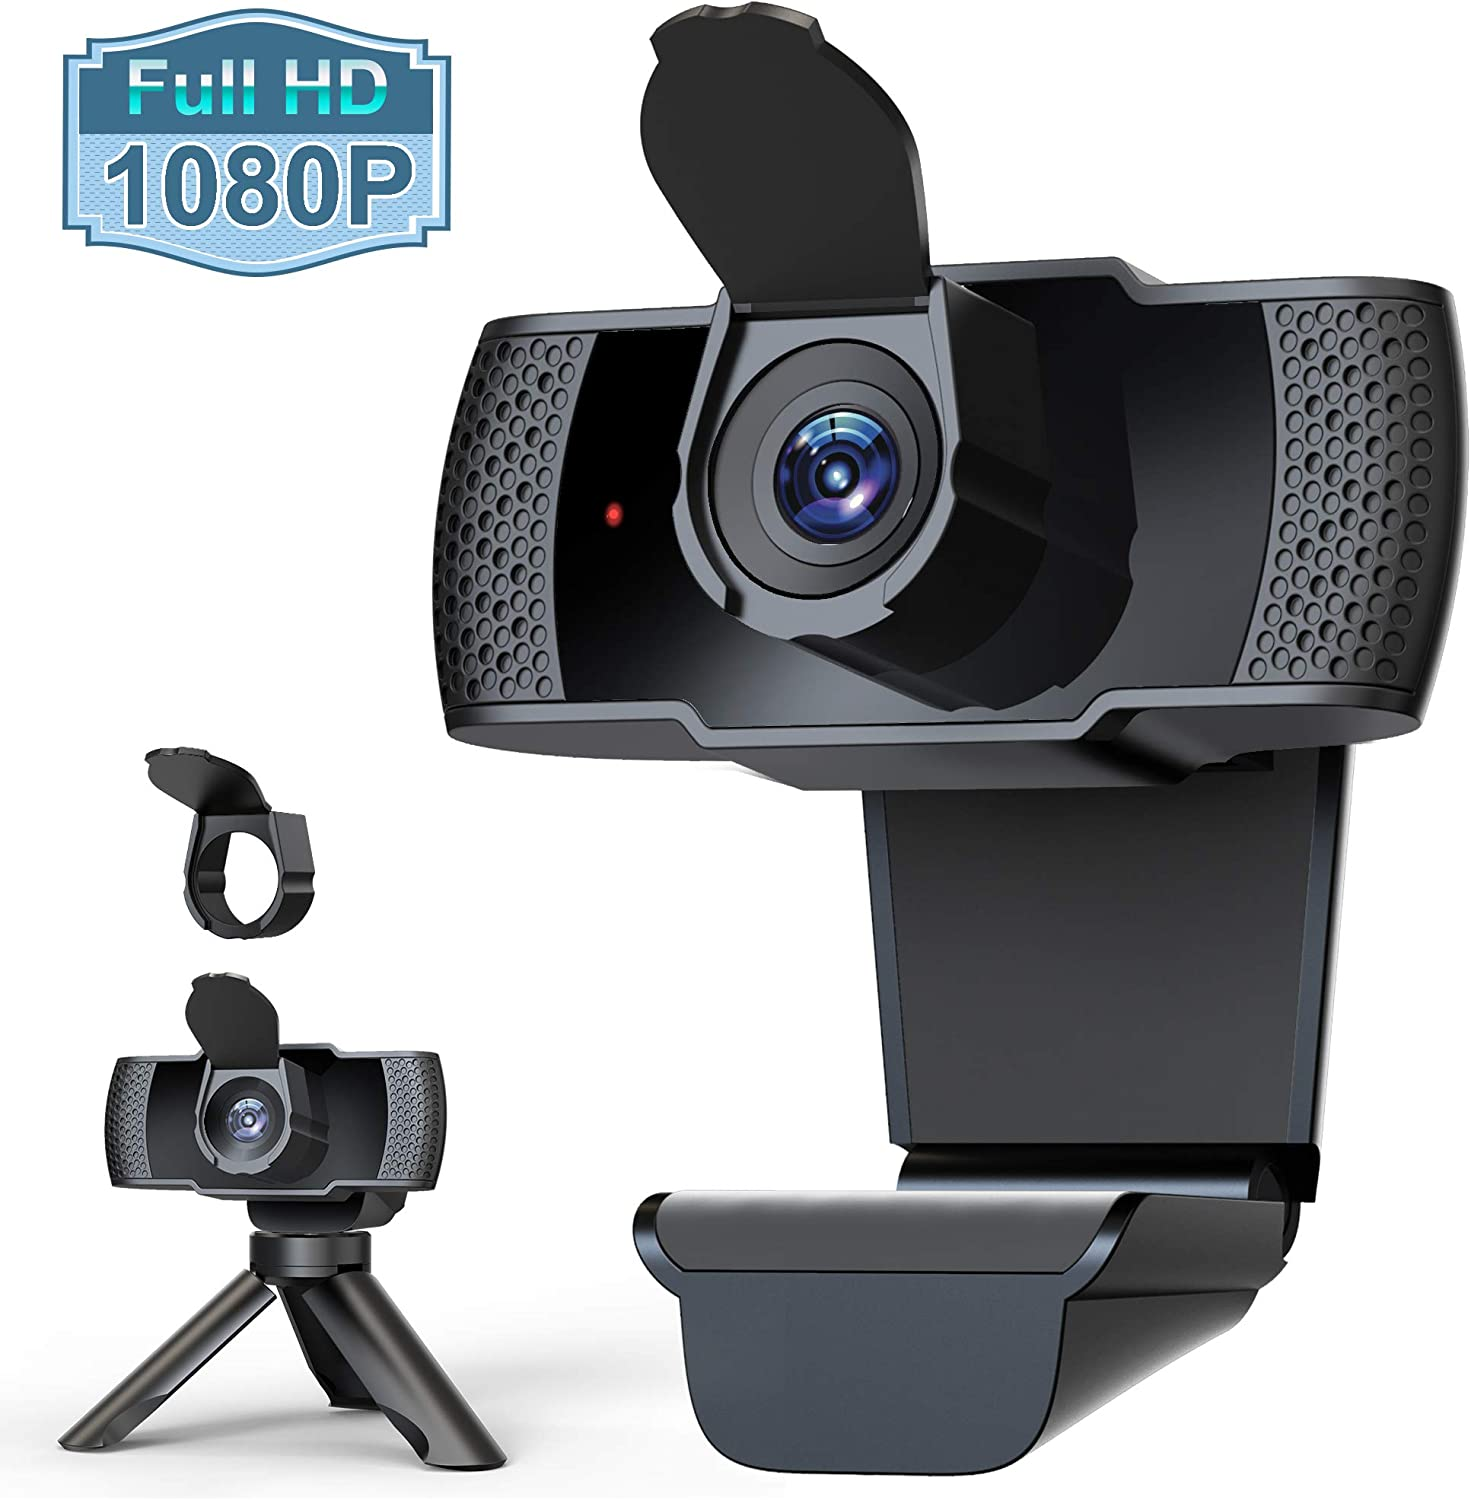 Webcam with Microphone for Desktop, 1080P HD Computer Camera with Privacy Cover Shutter & Tripod, USB PC Laptop Streaming Web Camera with Wide View Angle for Video Conferencing Calling Recording